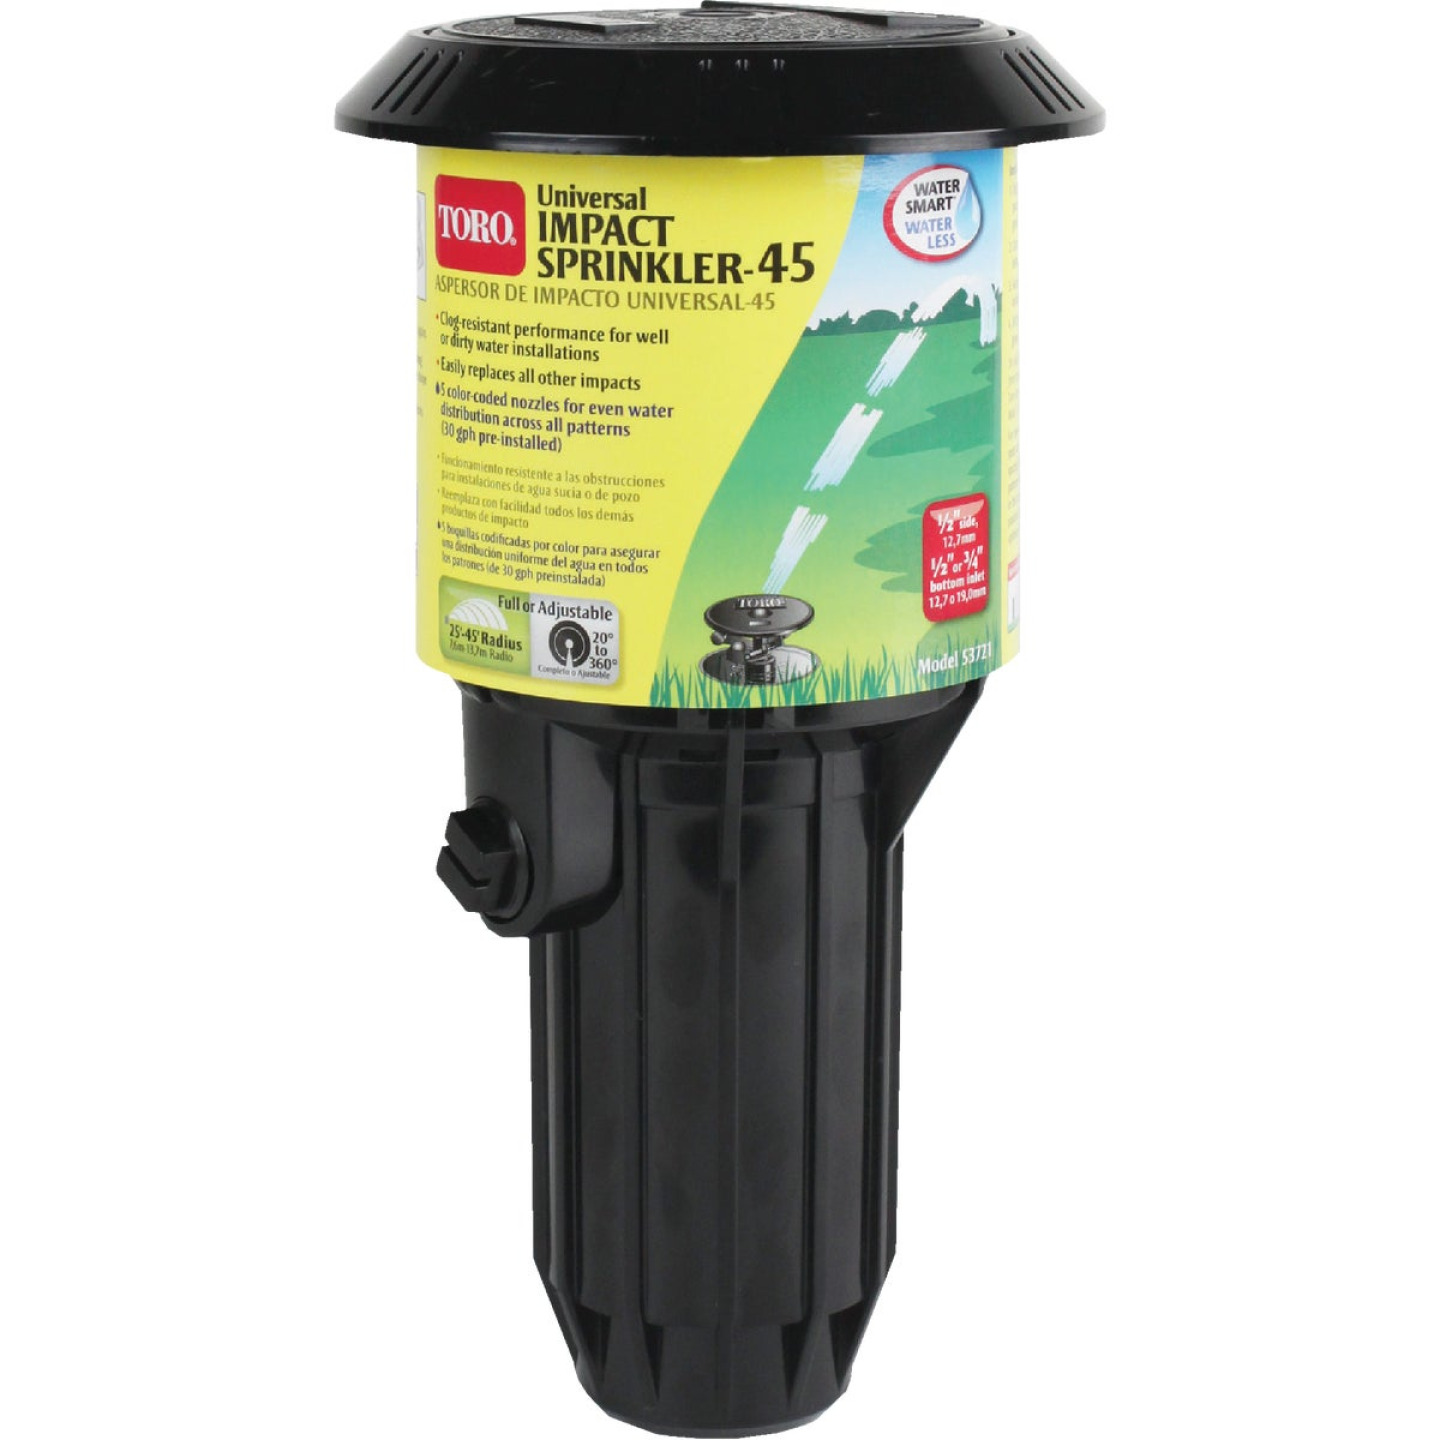 Toro 3 In. 20 Deg. to 340 Deg. Universal Pop-Up Impact Head Sprinkler Image 1